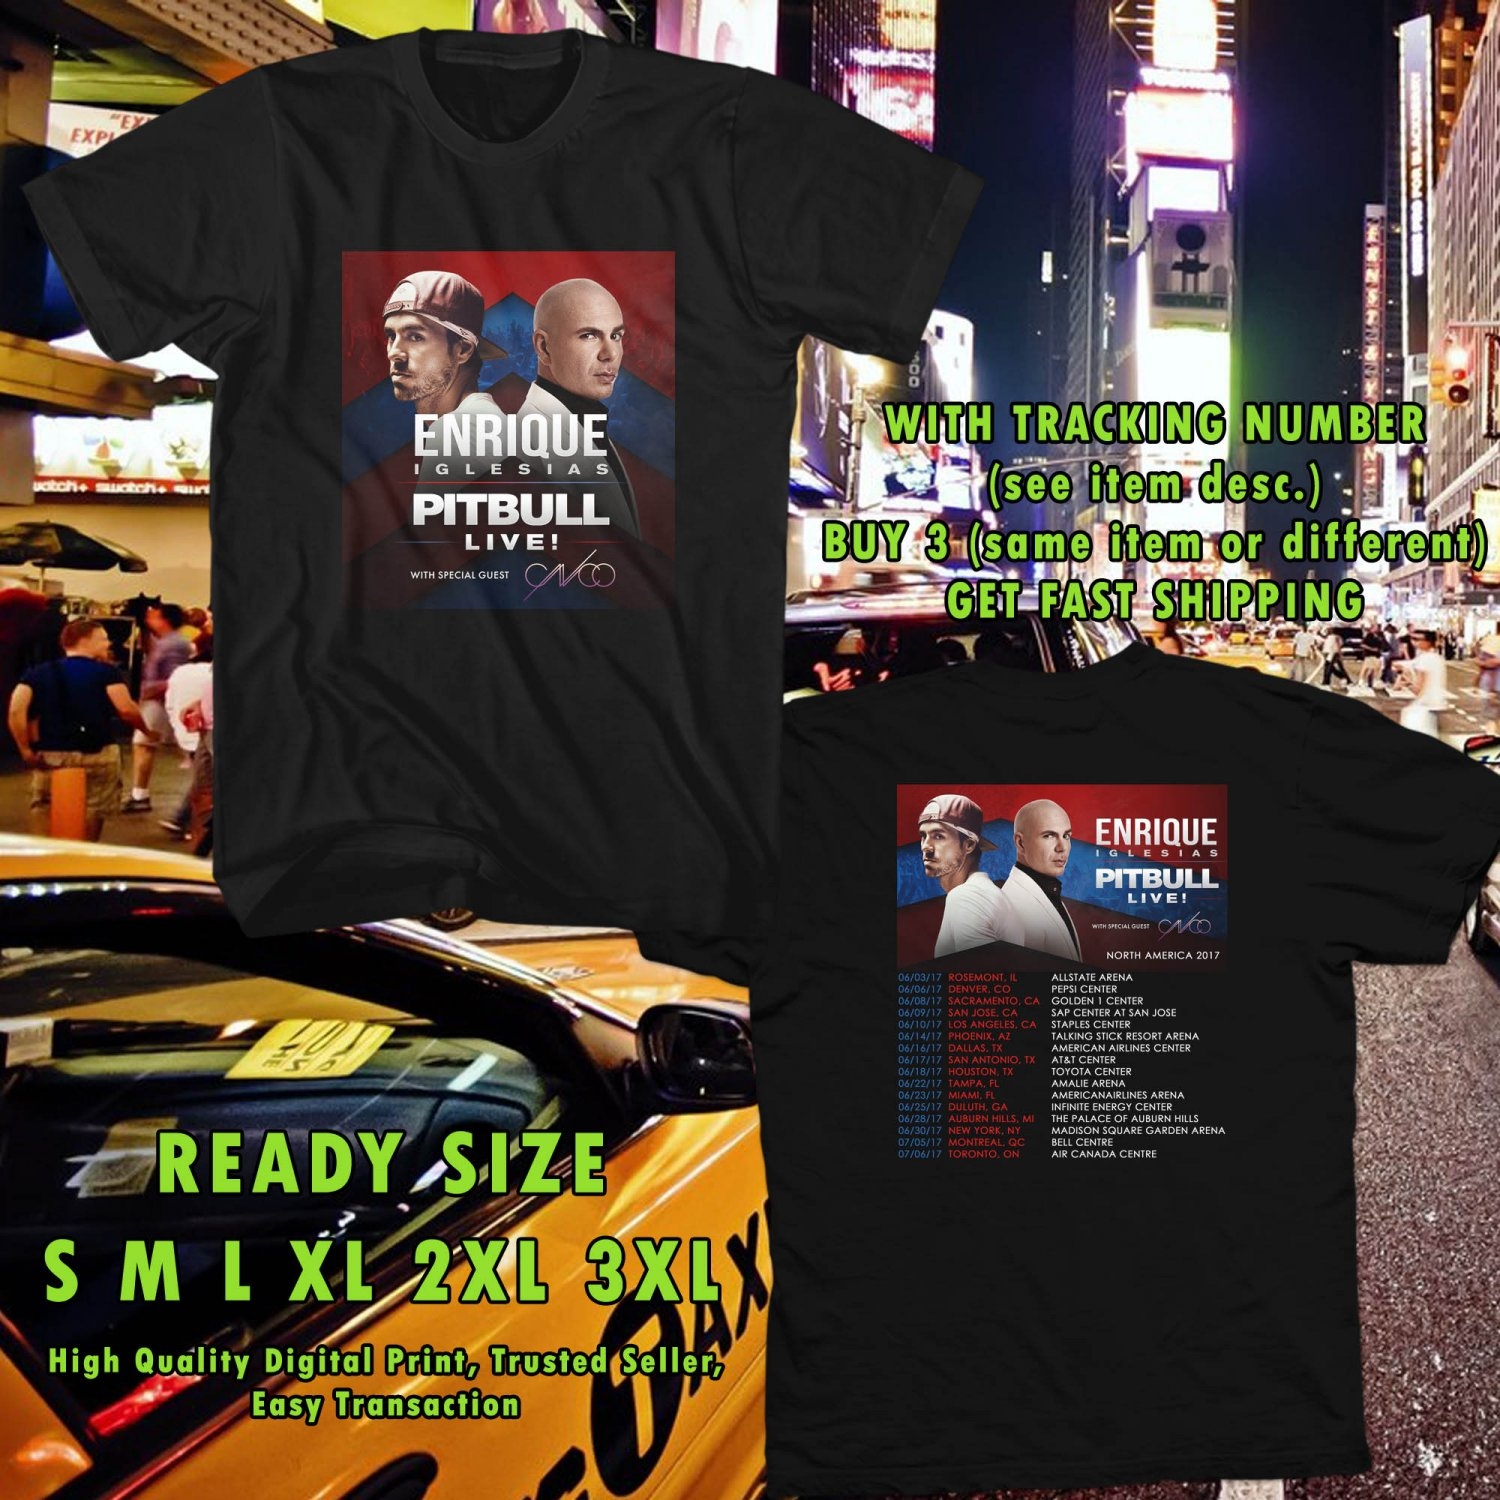 NEW ENRIQUE IGLESIAS AND PITBULL IVE N.AMERICA TOUR 2017 BLACK TEE 2 SIDE DMTR